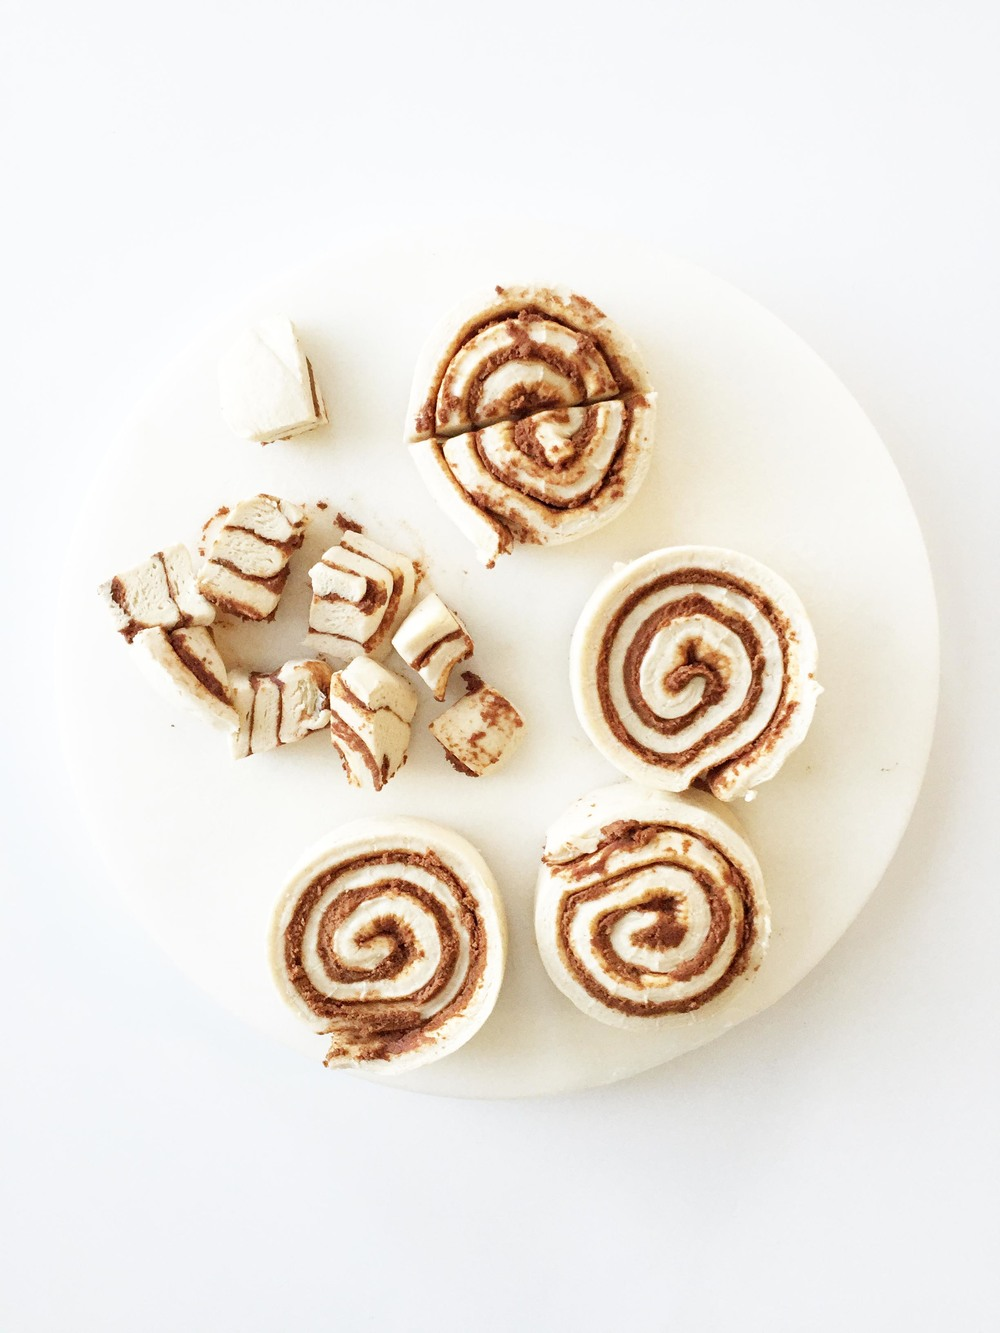 cinnamon-roll-bake6.jpg